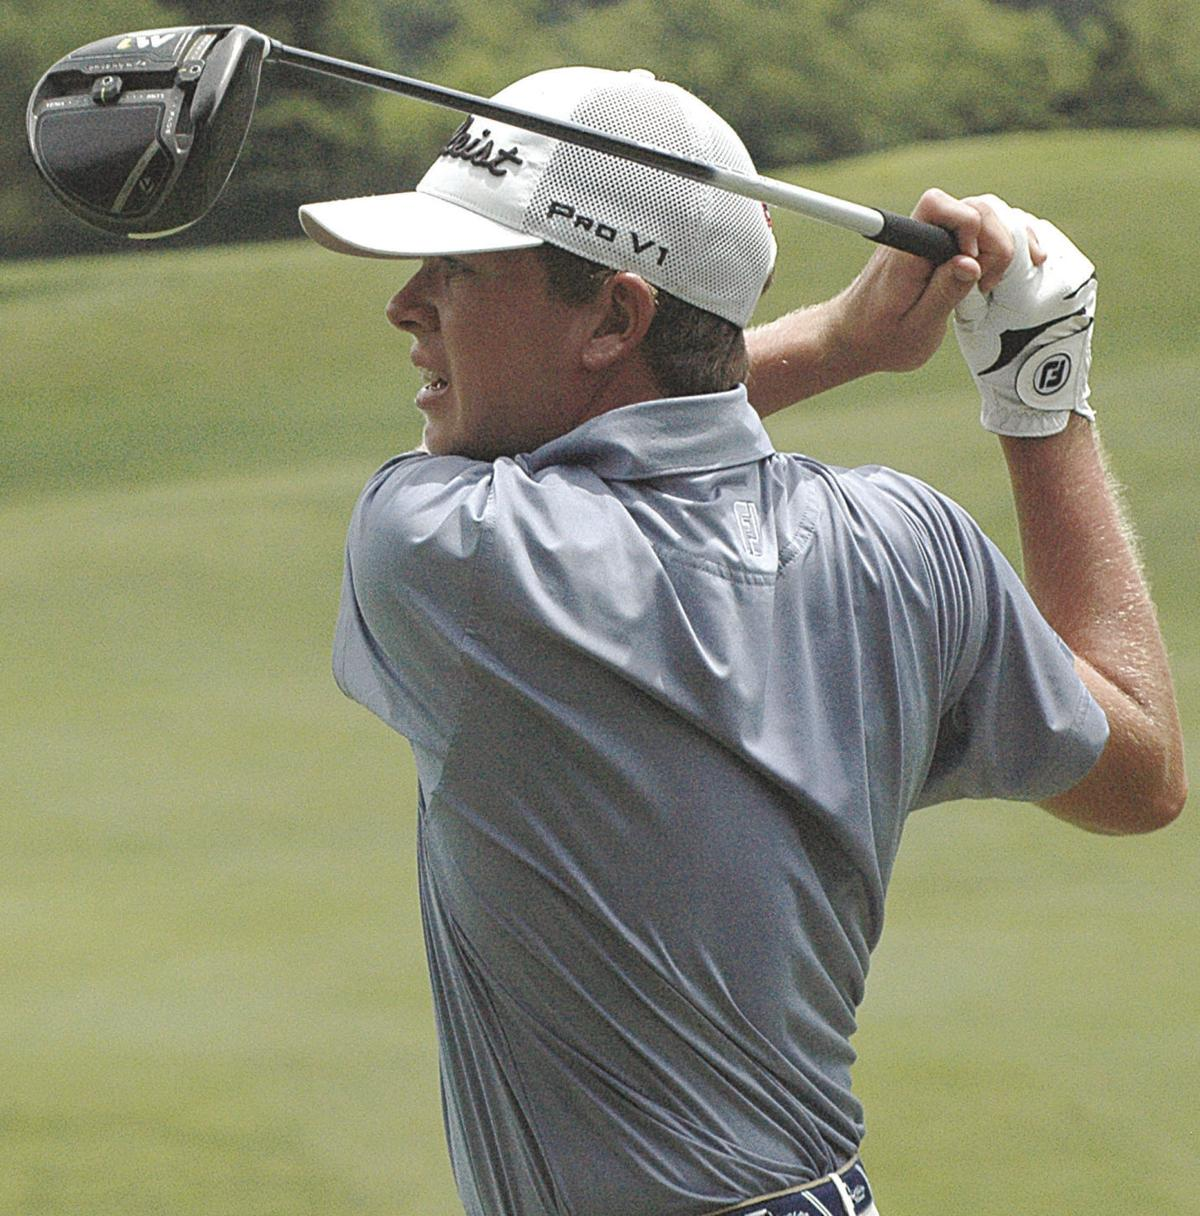 Manley rallies at The Waterfront to claim Haley-SML Juniors title